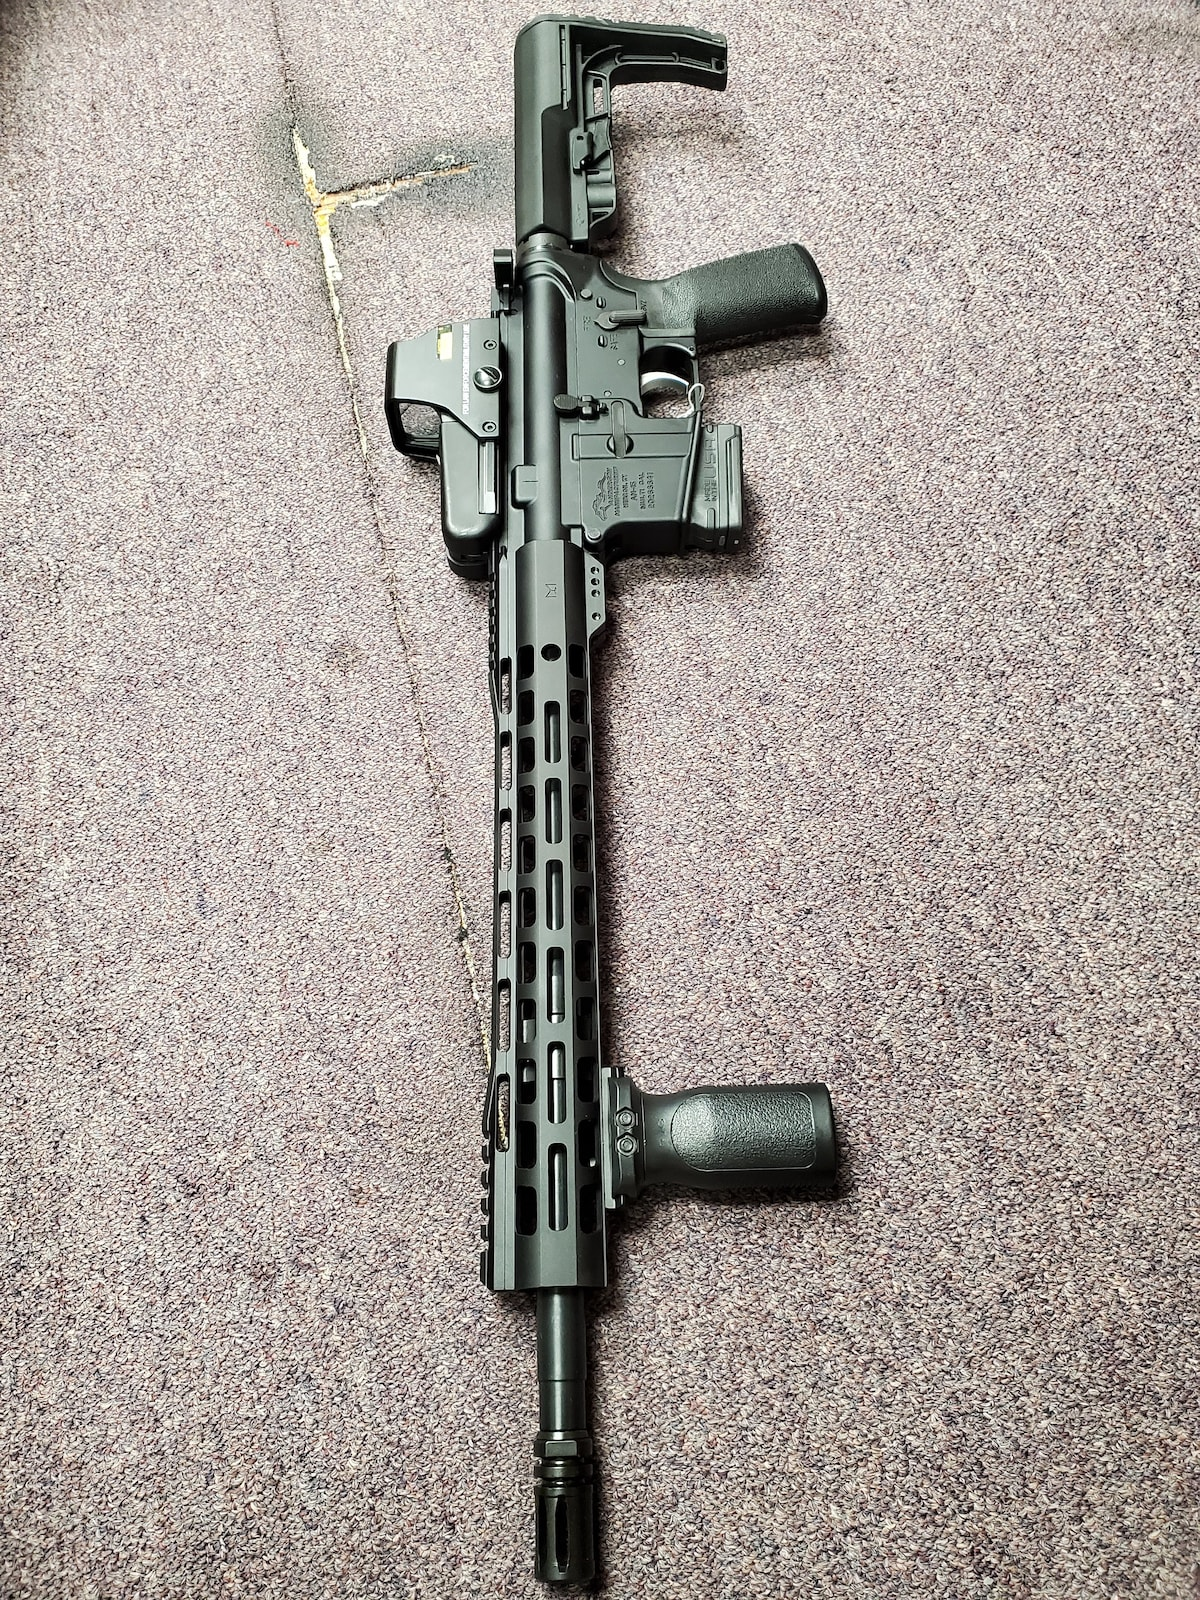 ANDERSON MFG. am15 with red dot sight & forward grip